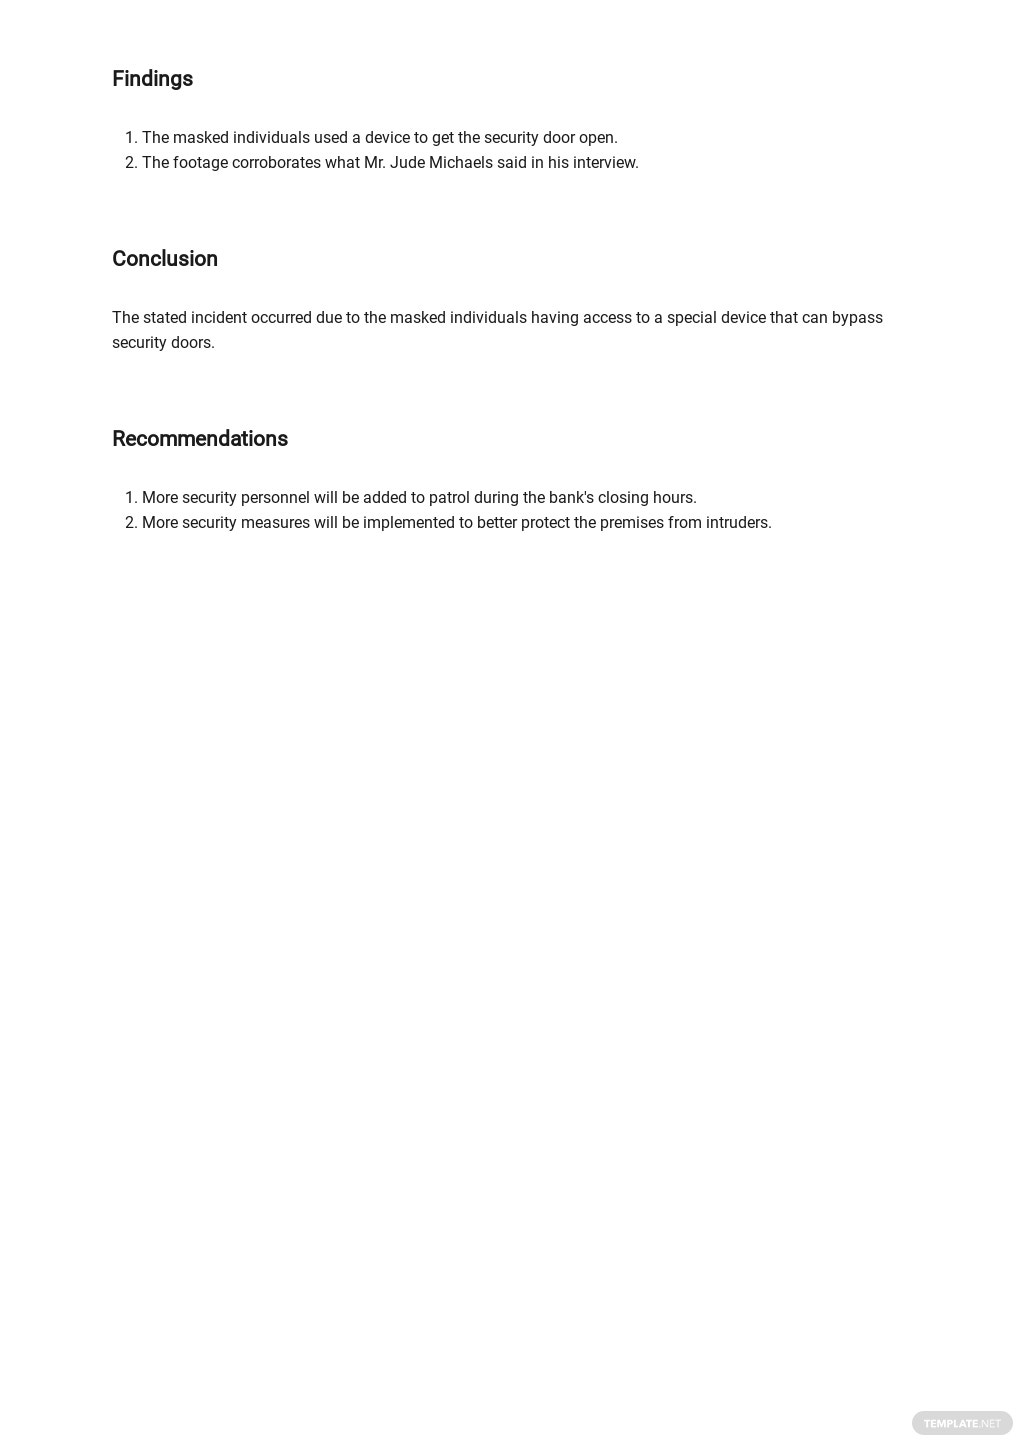 Free Security Incident Report Template 2.jpe